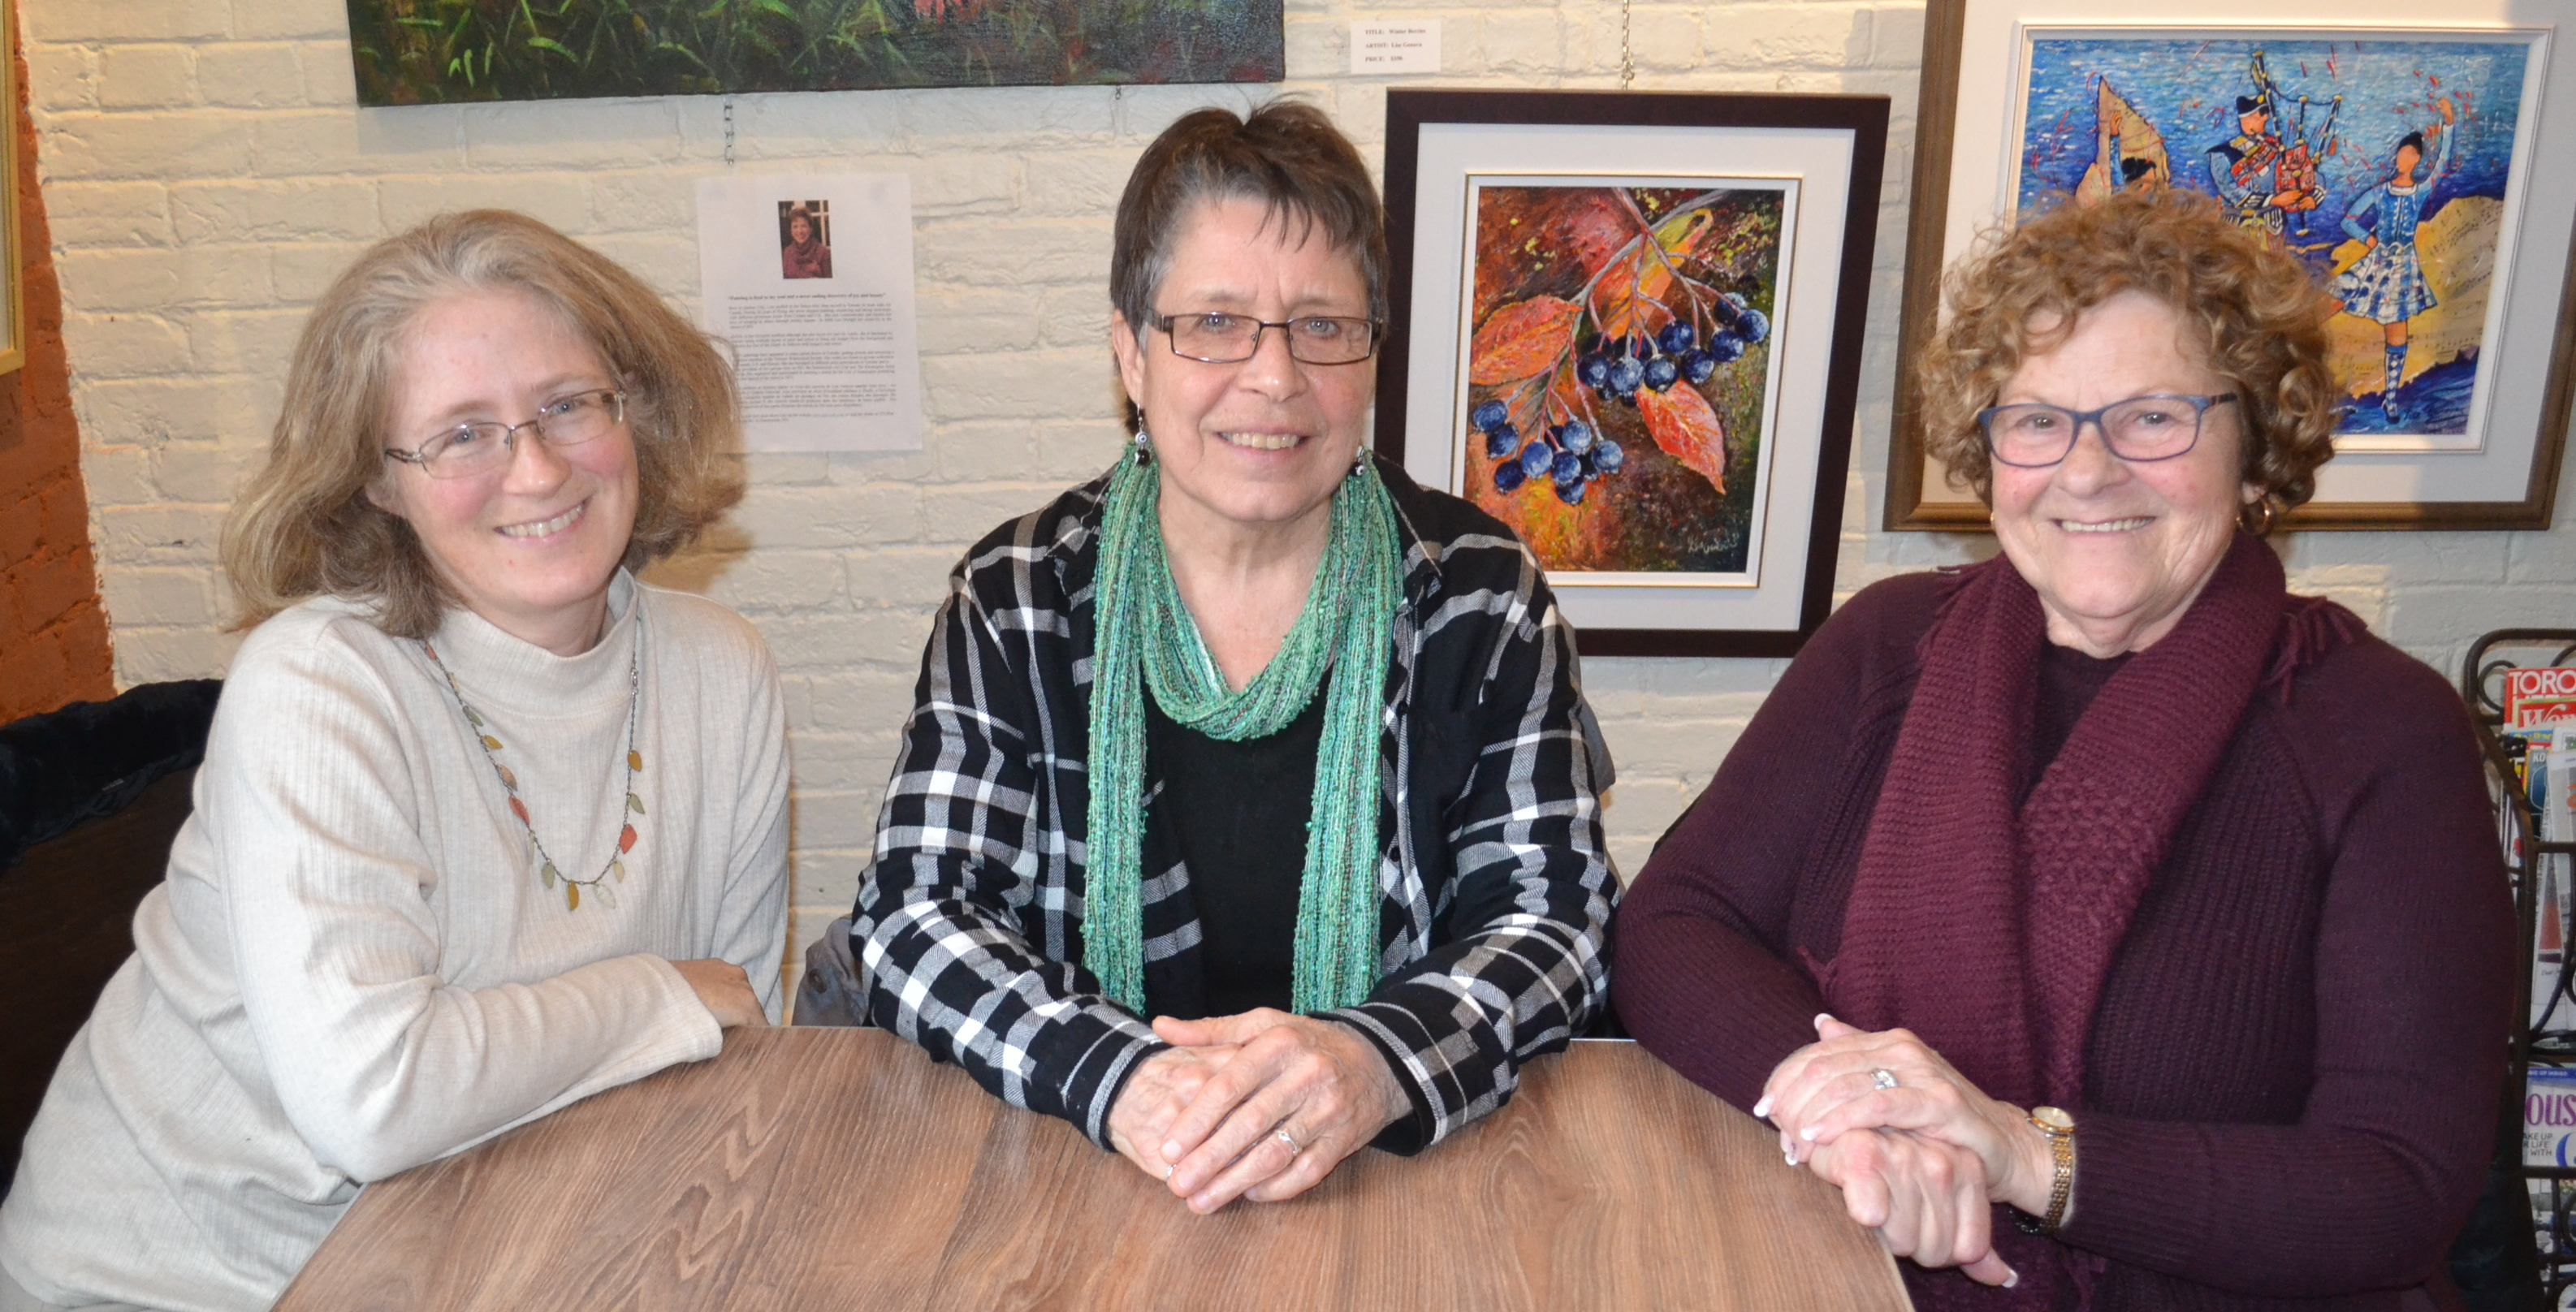 summerside single women Women's network pei (wnpei) is a not-for-profit organization based in the province of prince edward island, canada we work to strengthen and support community.